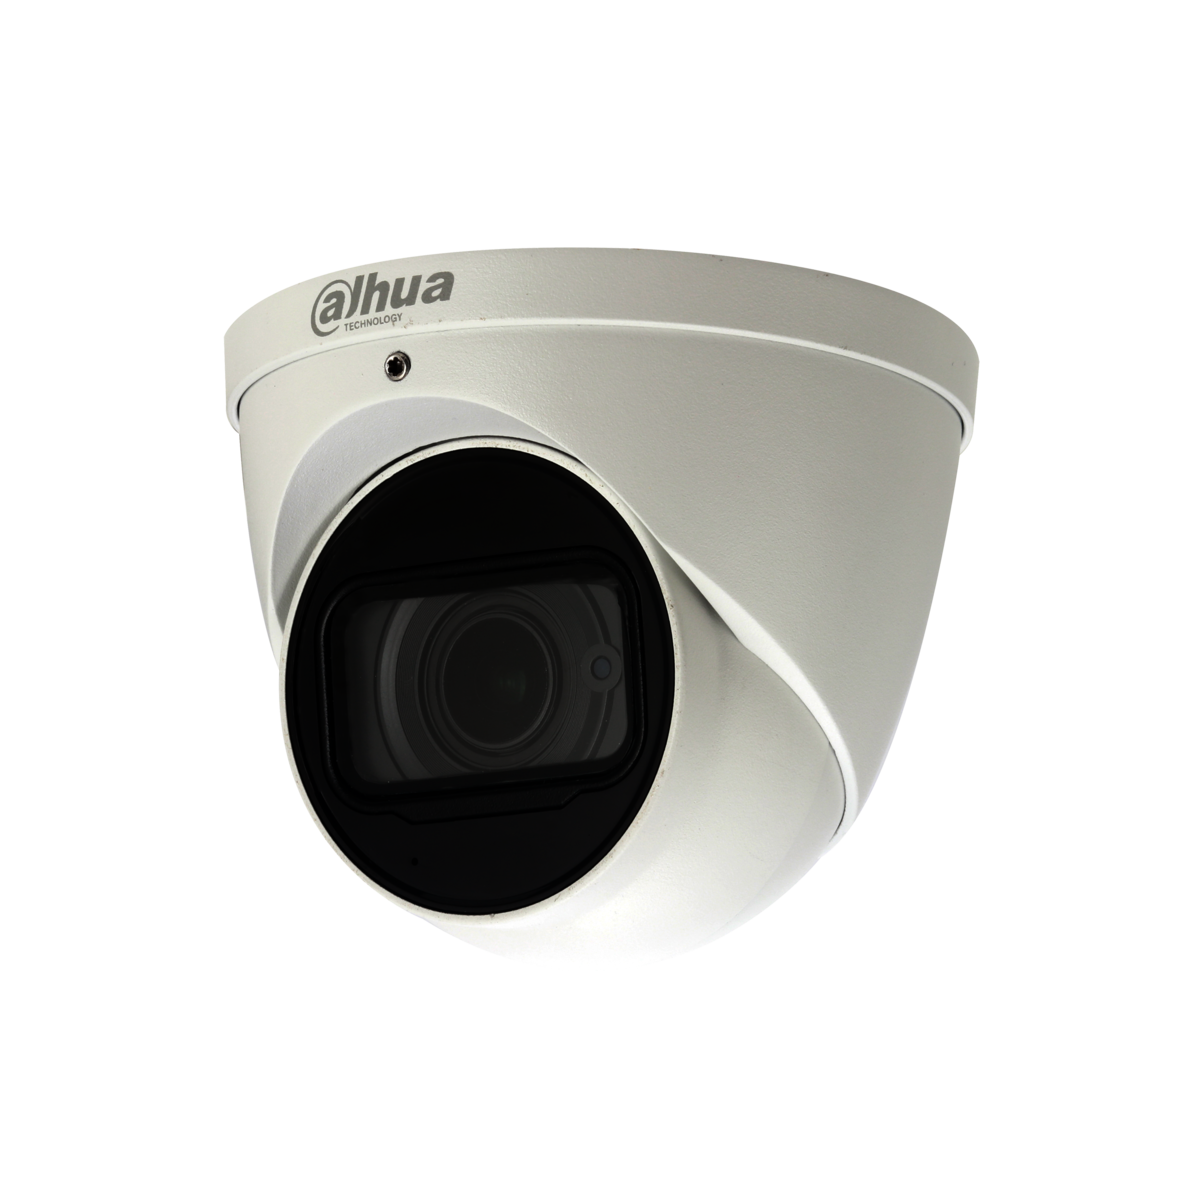 Dahua DH-IPC-HDW5631RP-ZE-27135 6MP WDR IR Eyeball Network Camera